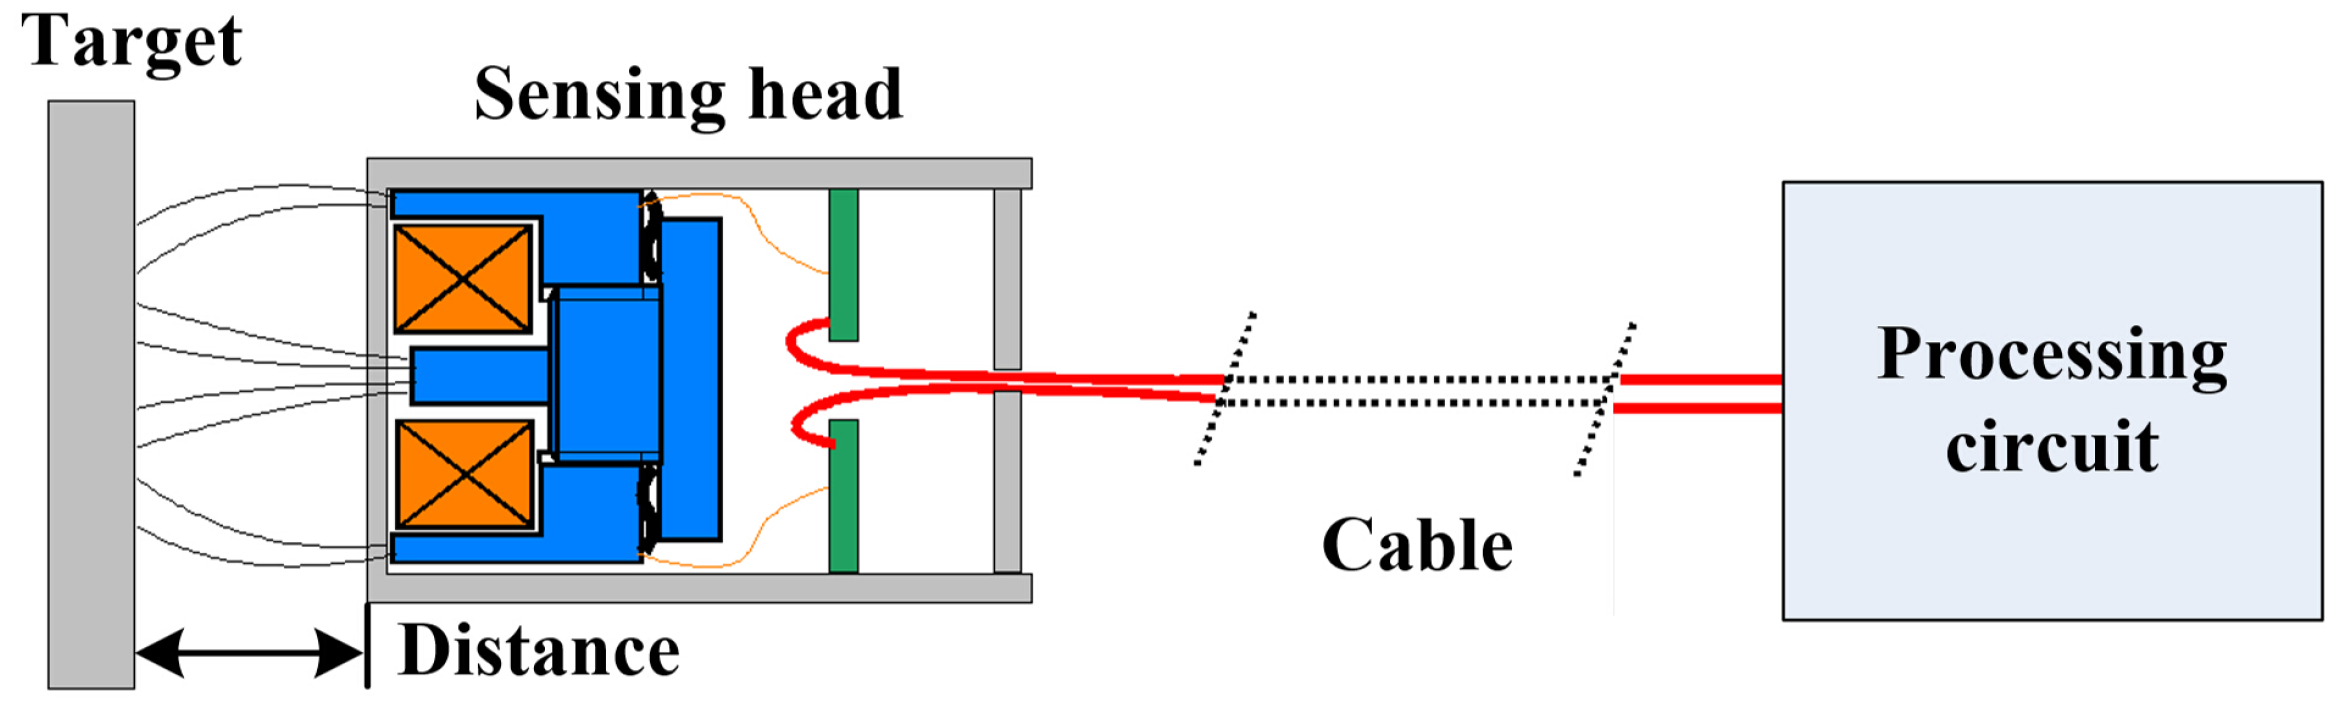 Inductive Proximity Switch Schematic Diagram Explained Wiring Diagrams Wire Sensor Free Download Sensors Full Text An Analog Digital Mixed Measurement Body Detector